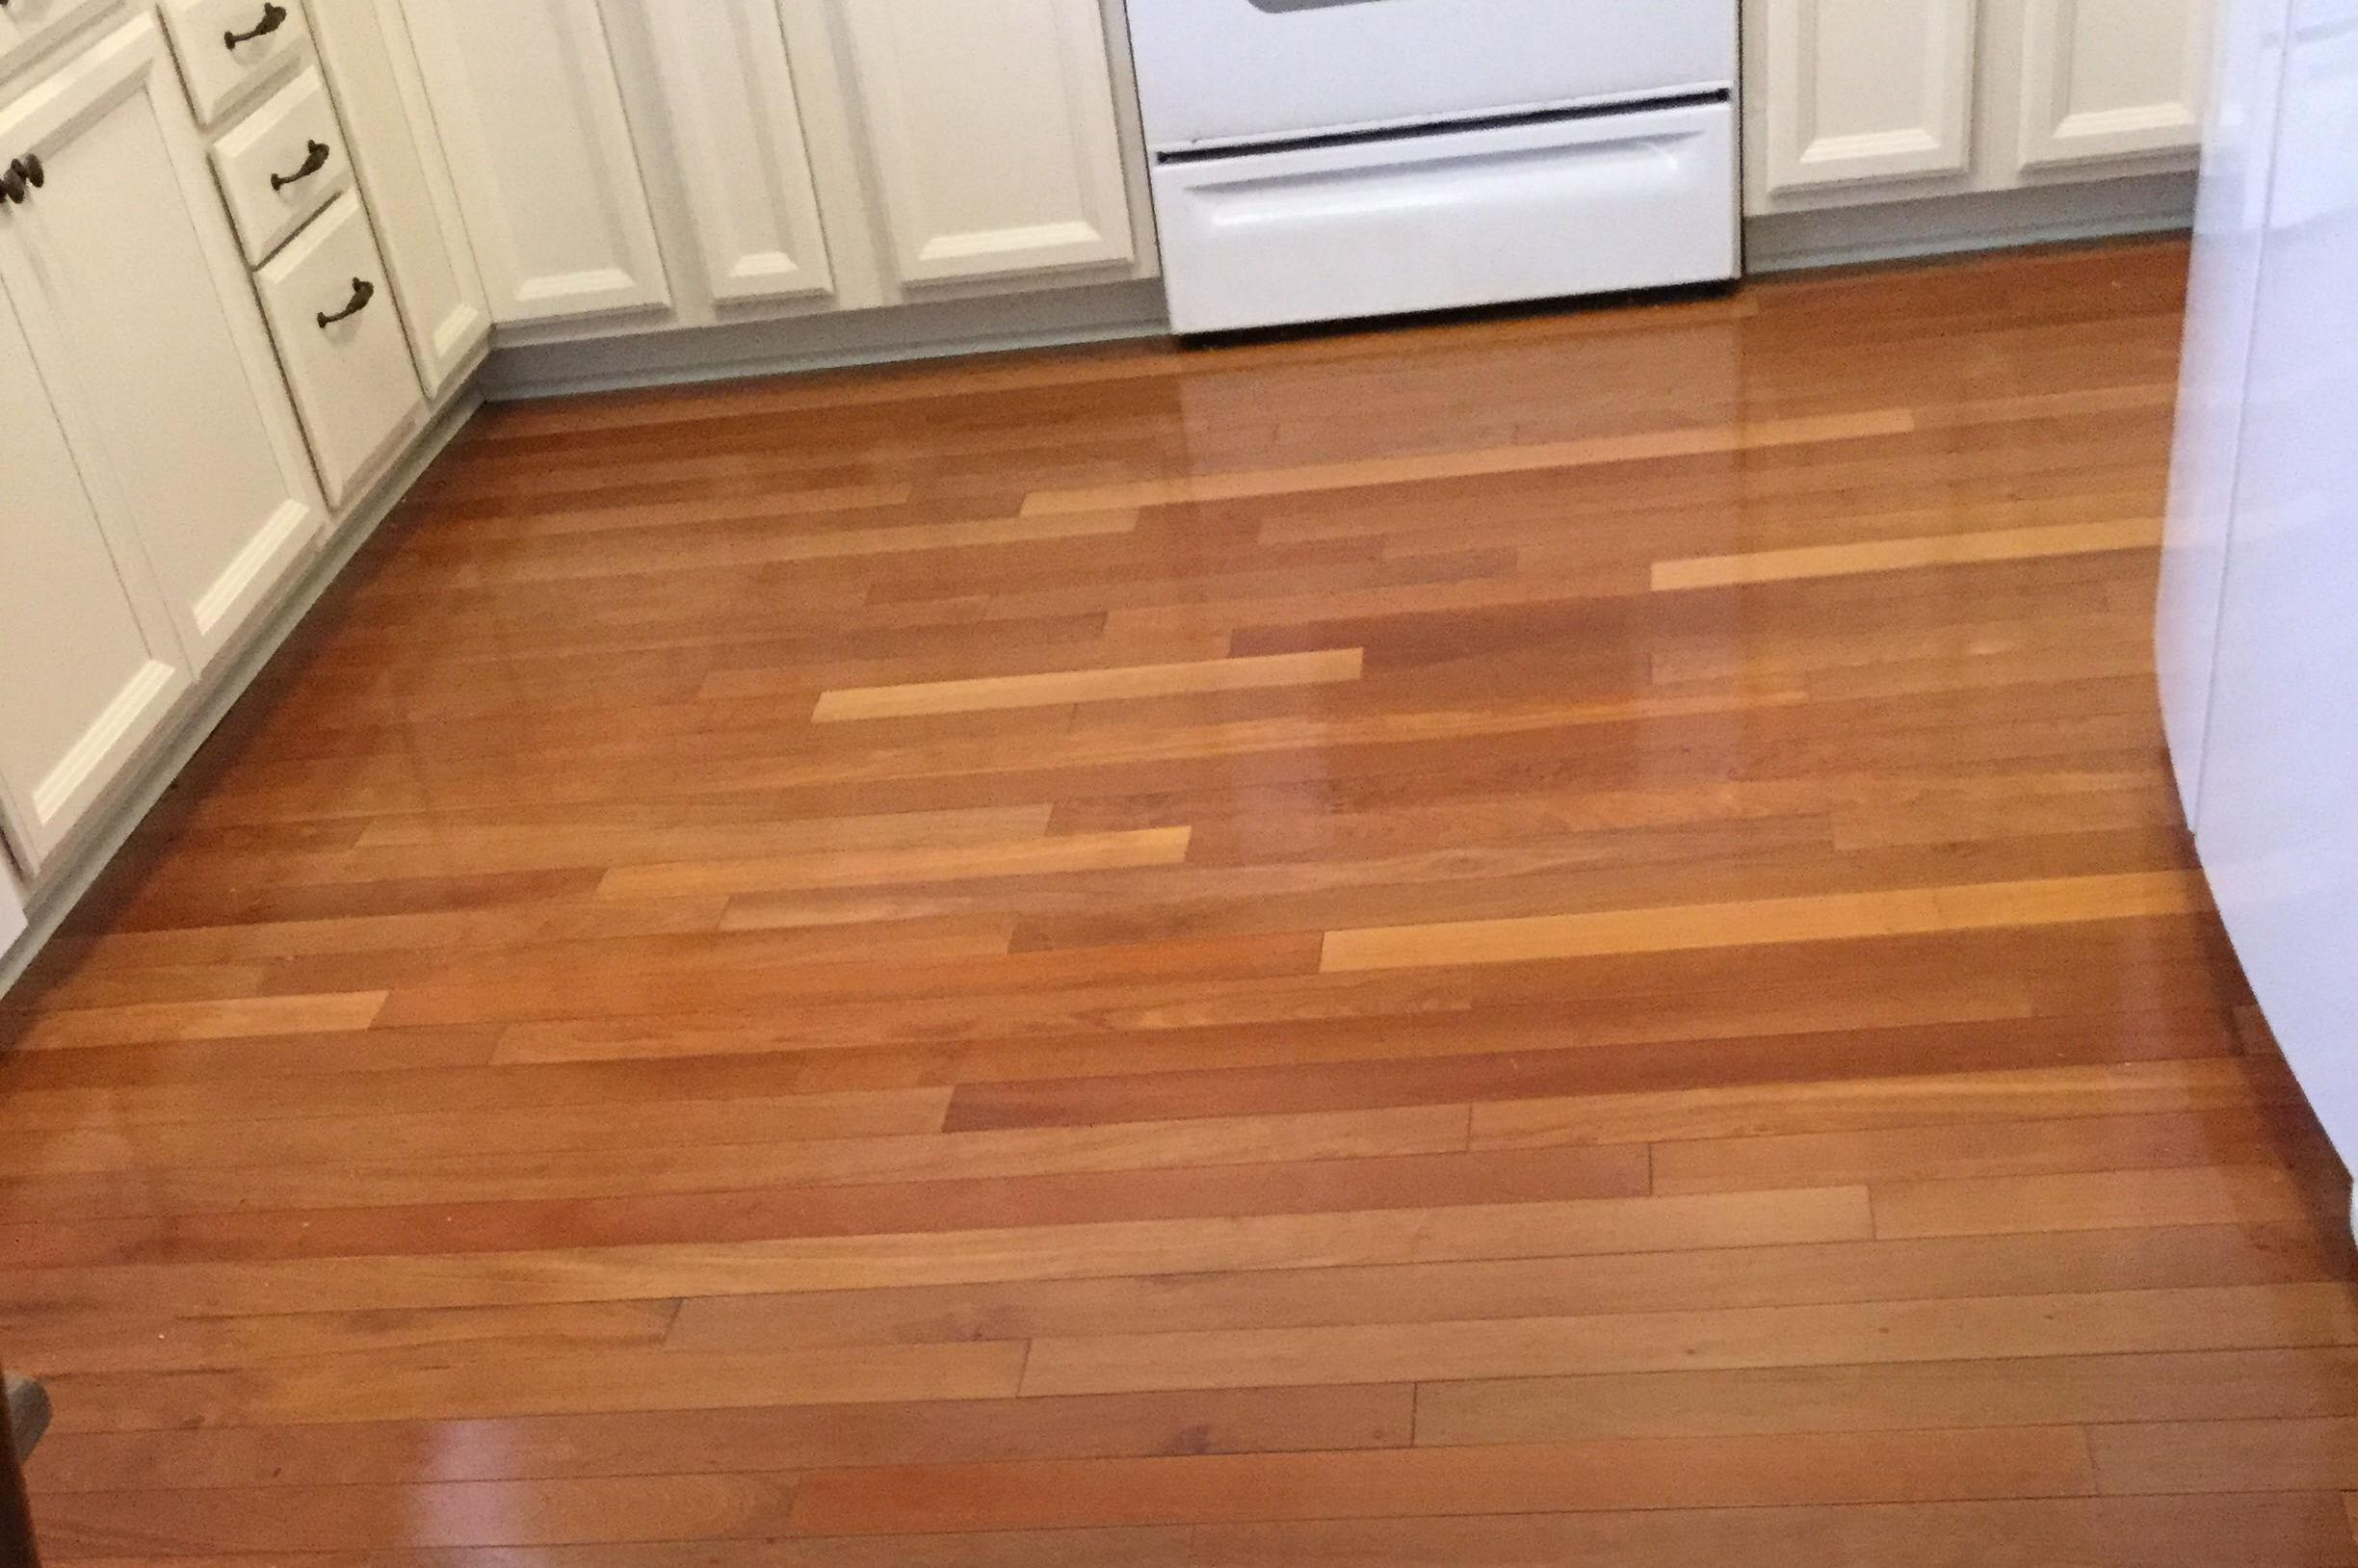 floor floors feature jersey flooring new oak wood red strip herringbone with pin borders